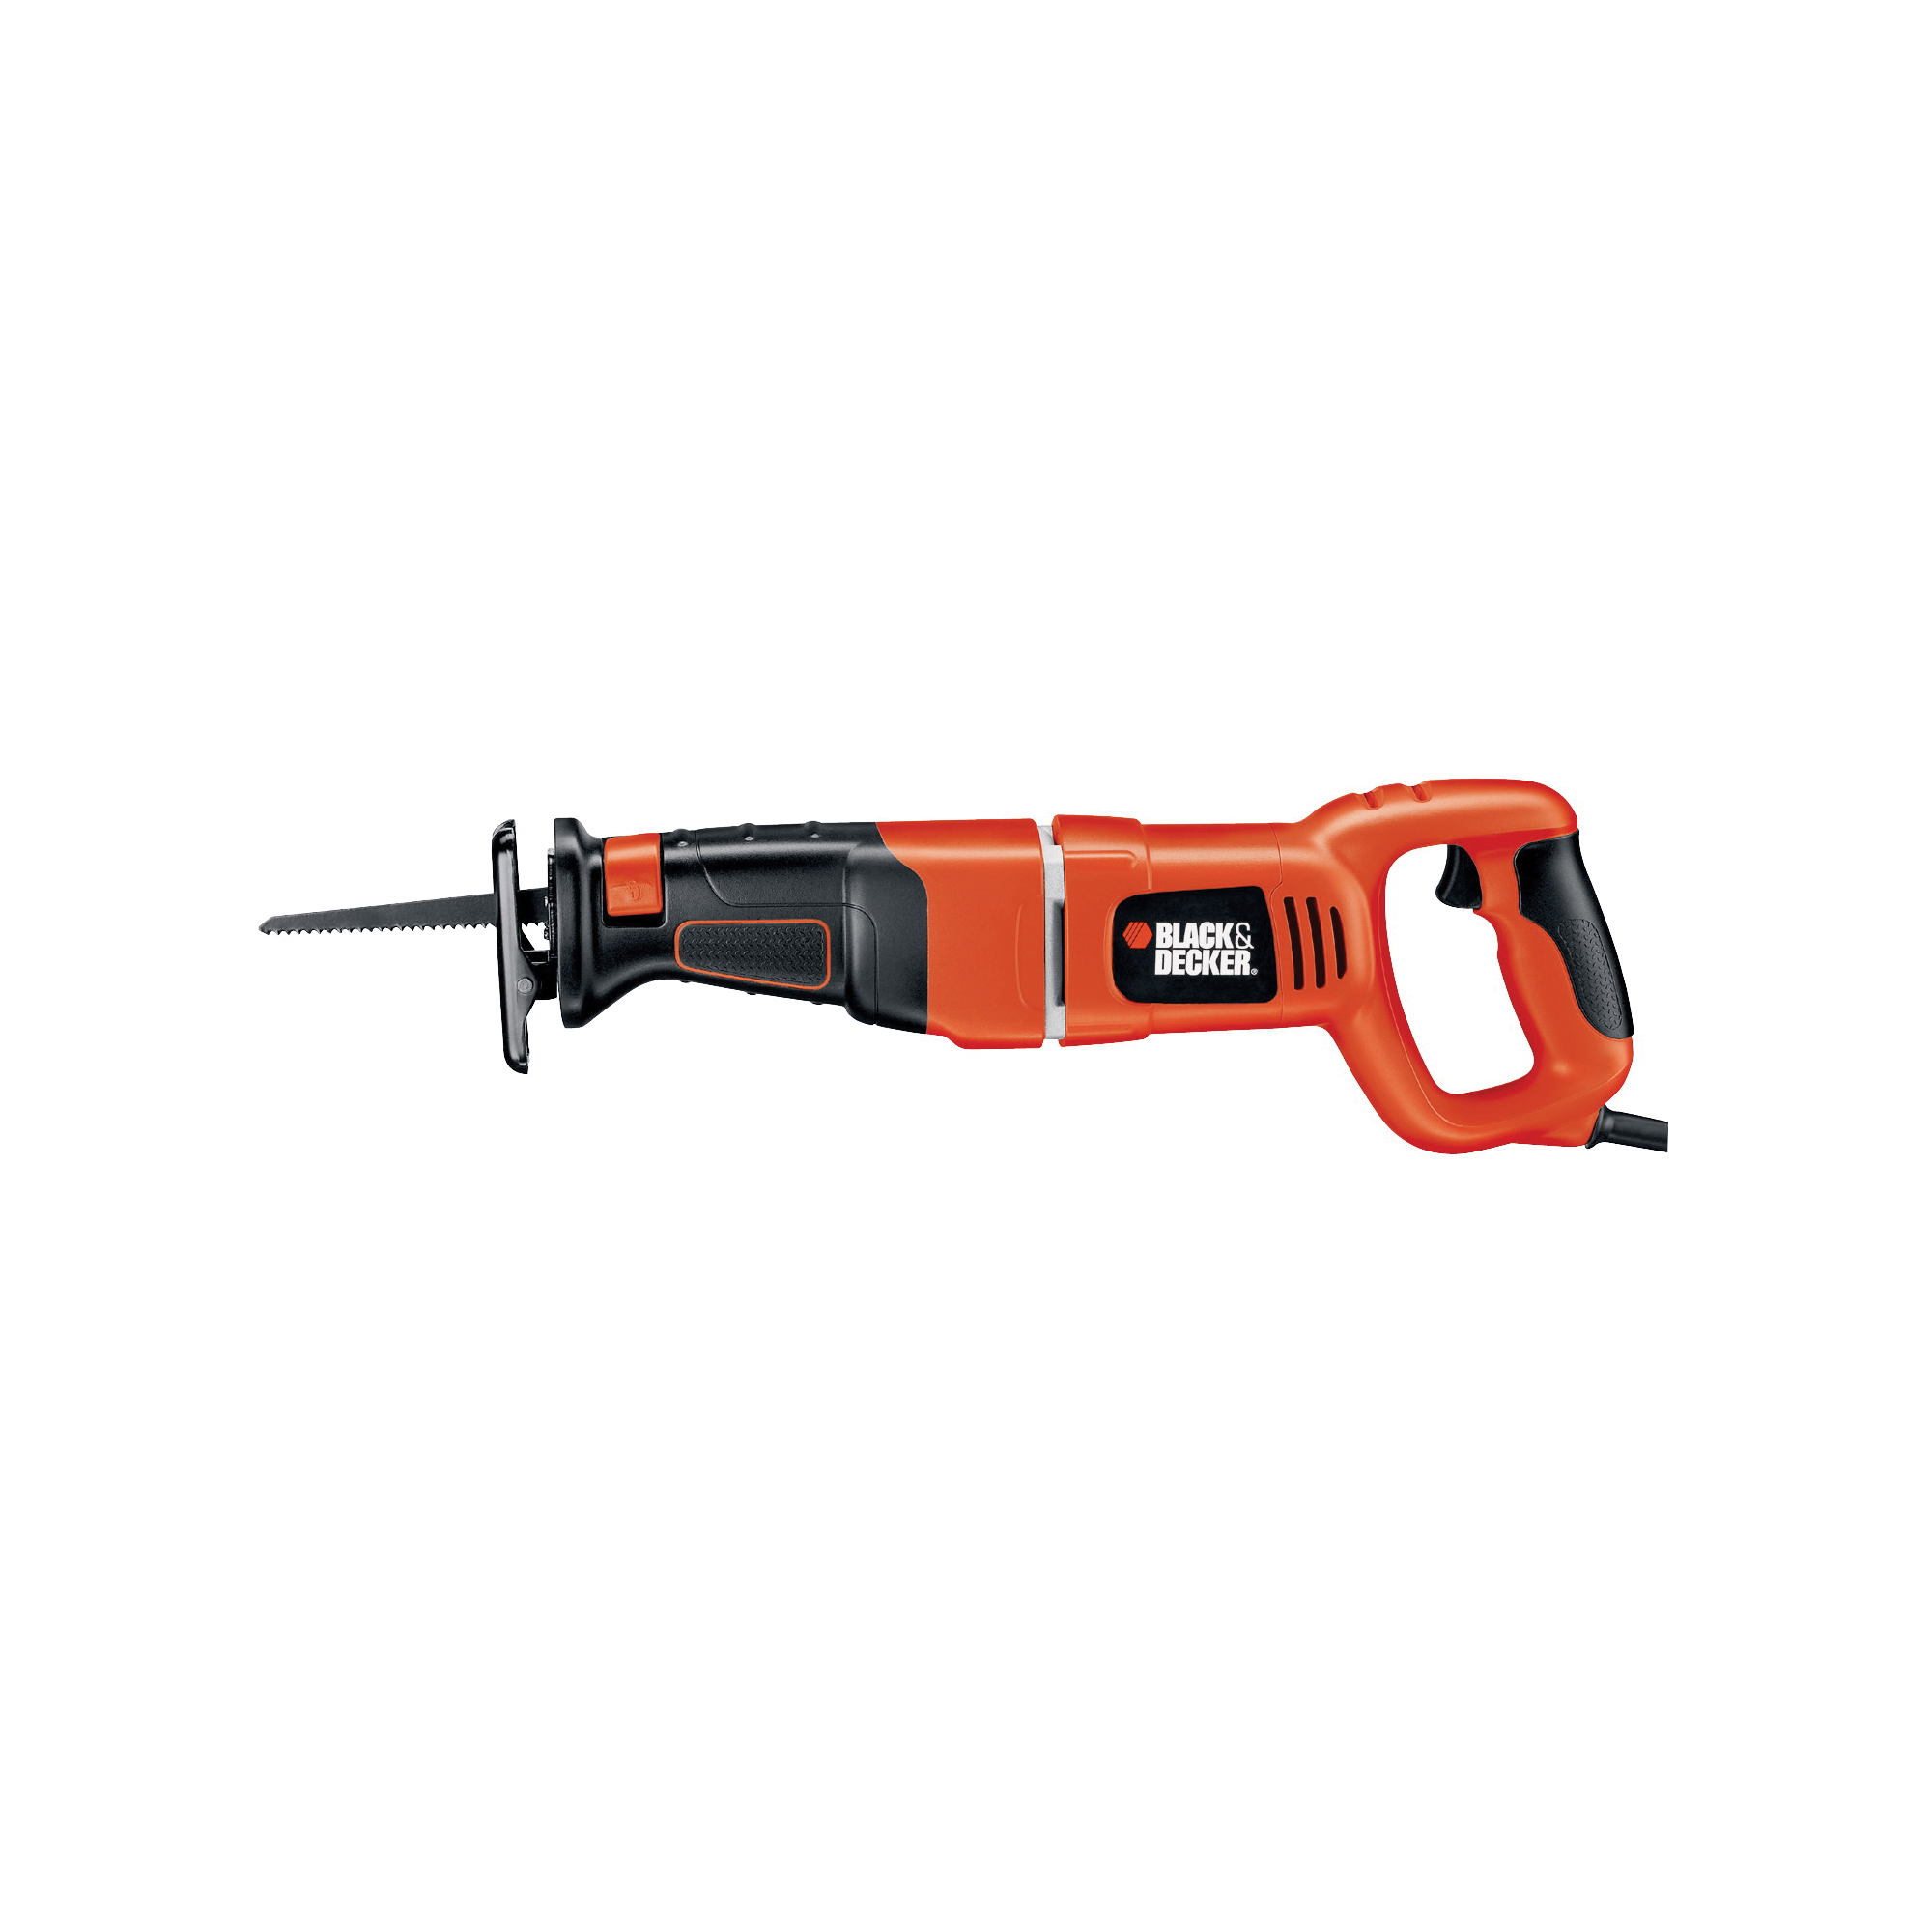 Picture of Black+Decker RS500K Reciprocating Saw, 120 V, 8.5 A, 1-1/8 in L Stroke, 2400 spm SPM